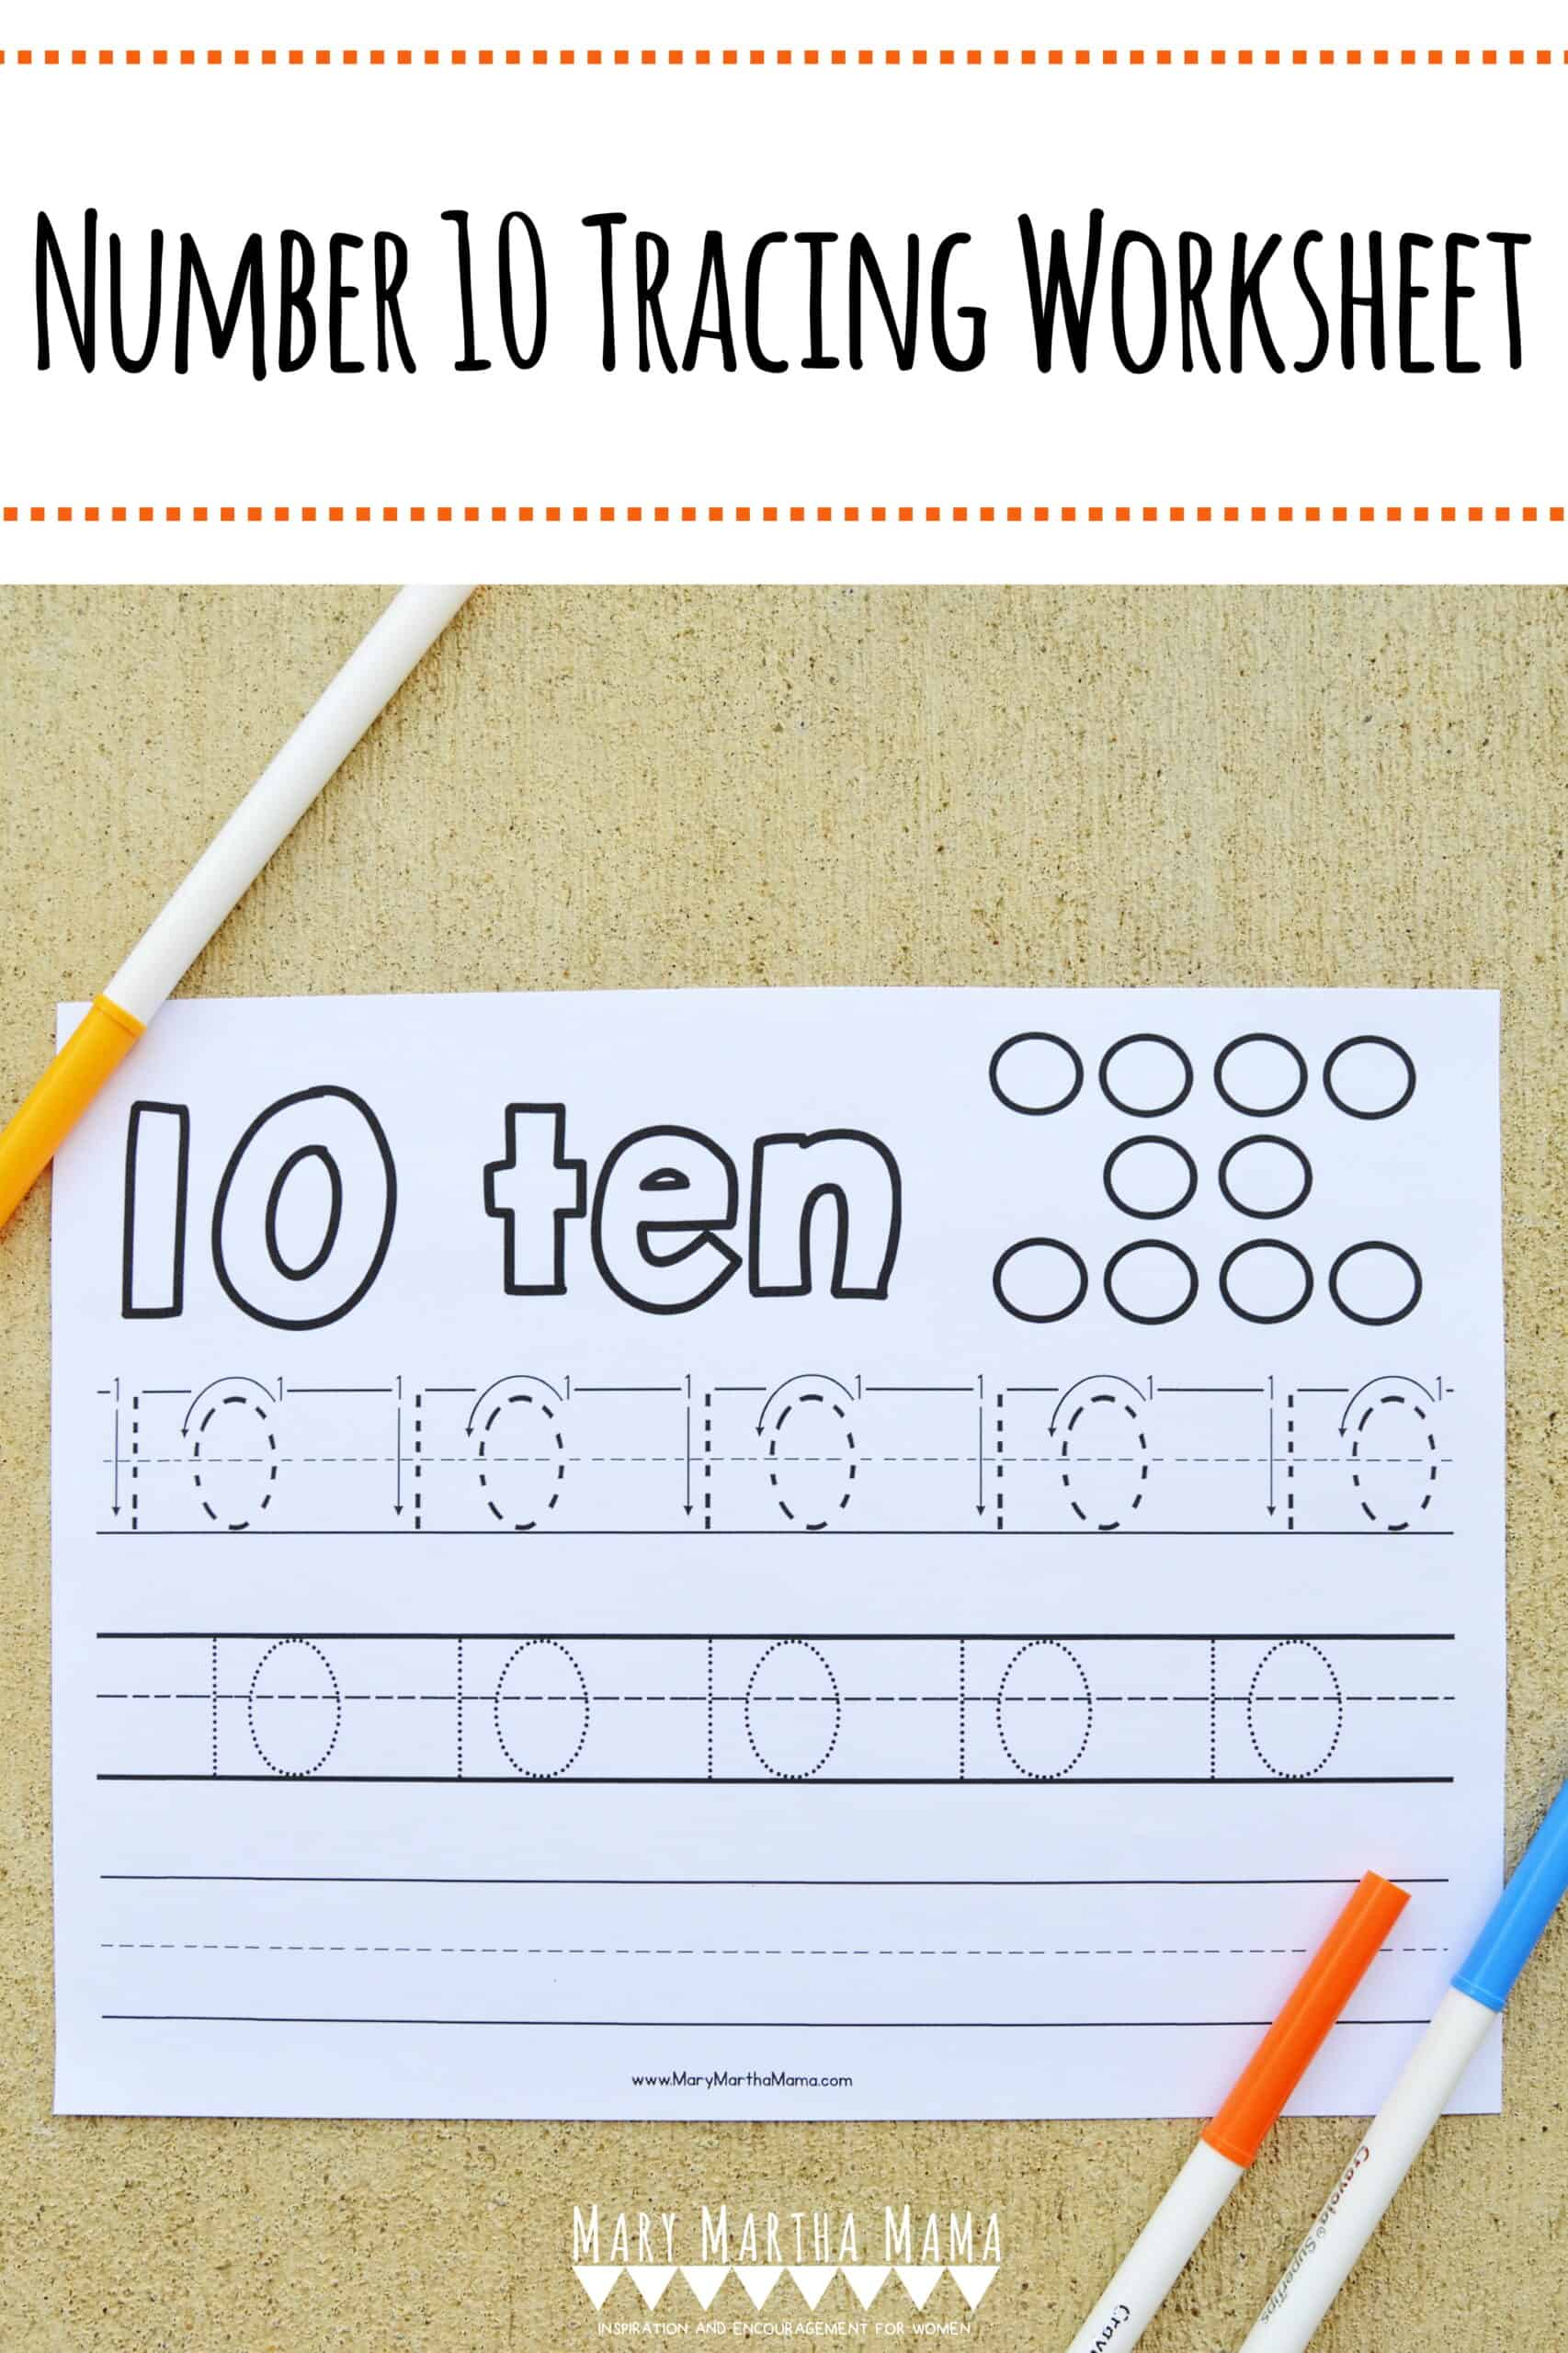 Number 10 Tracing Worksheet Mary Martha Mama